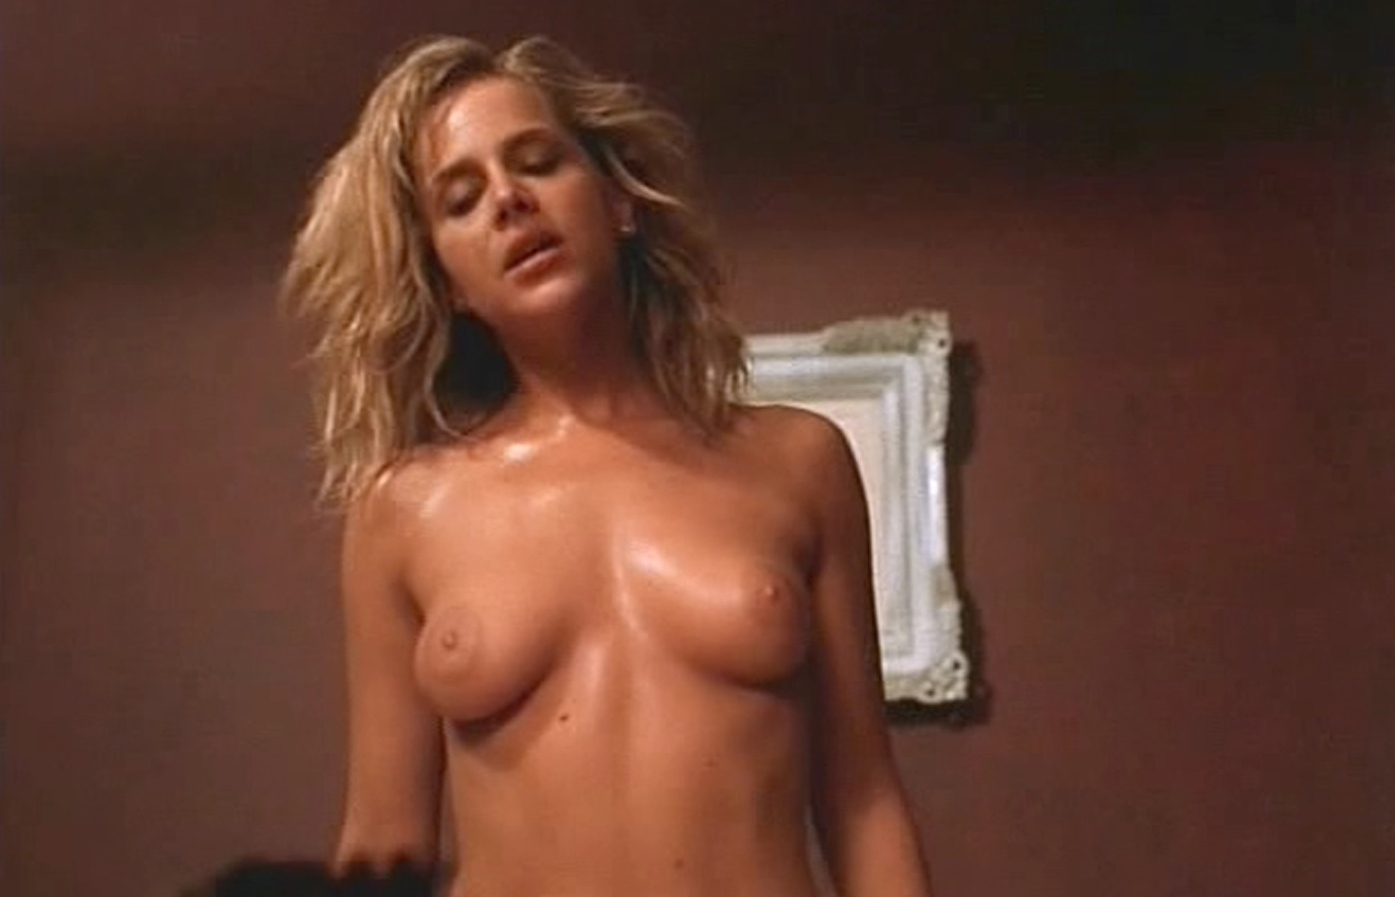 Dexter julie benz sex gif, milf and dauther